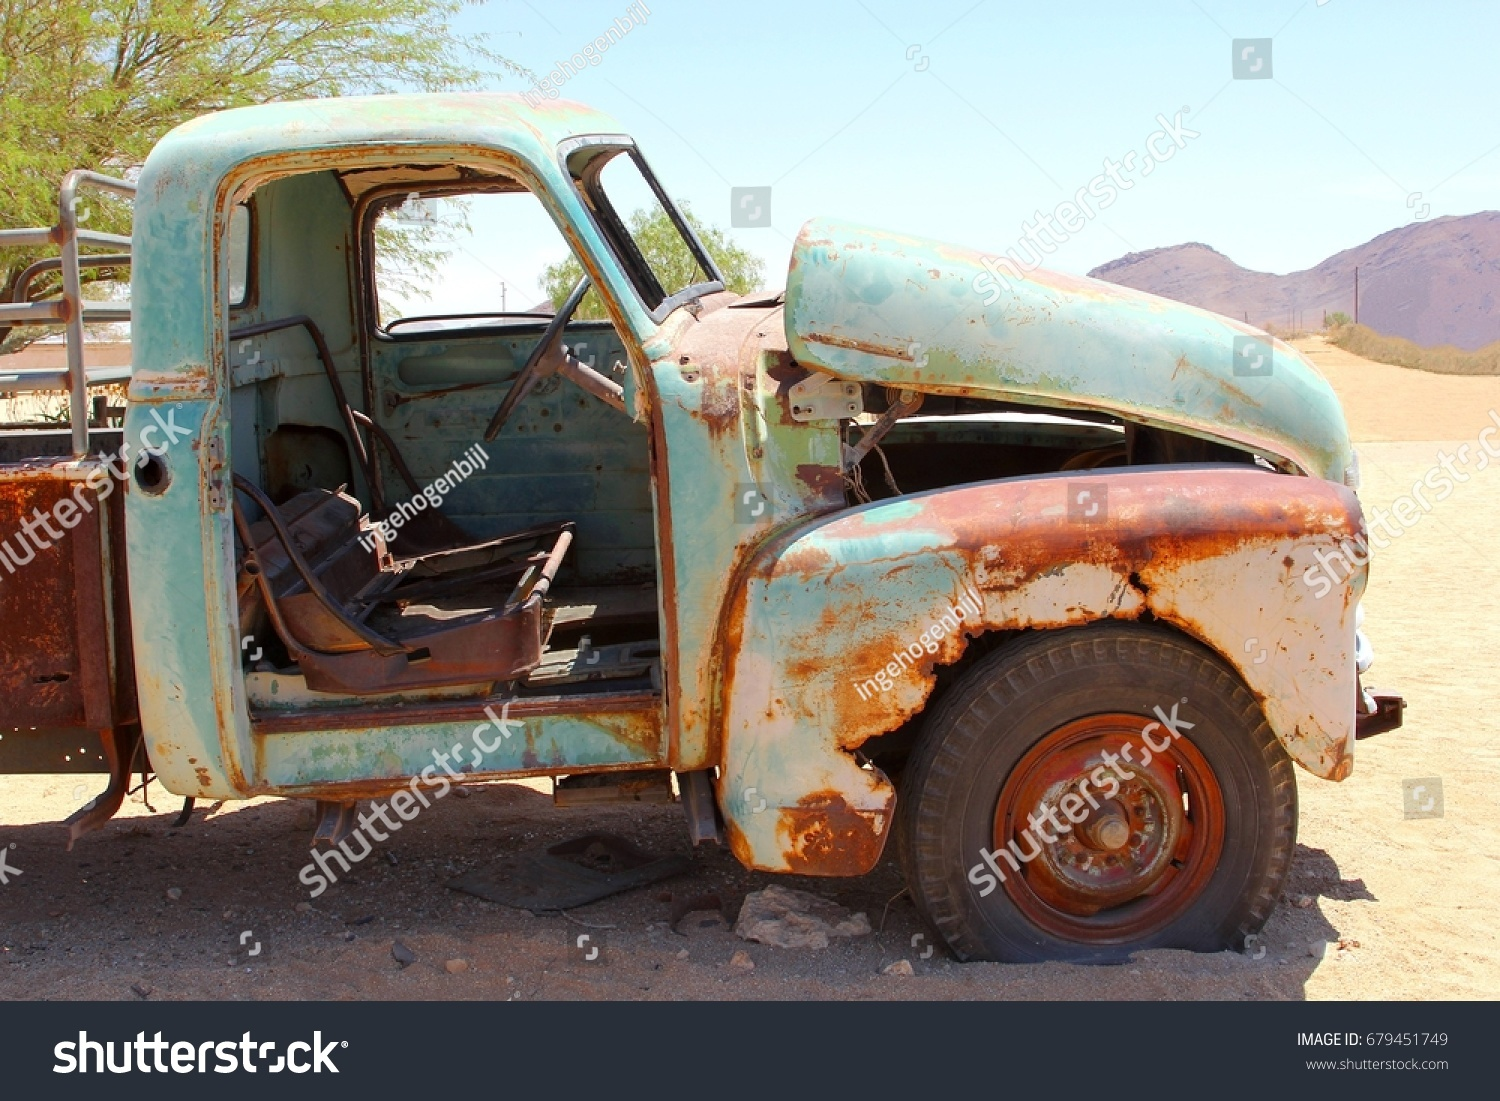 Side View Abandoned Rusty Pickup Truck Stock Photo (Royalty Free ...